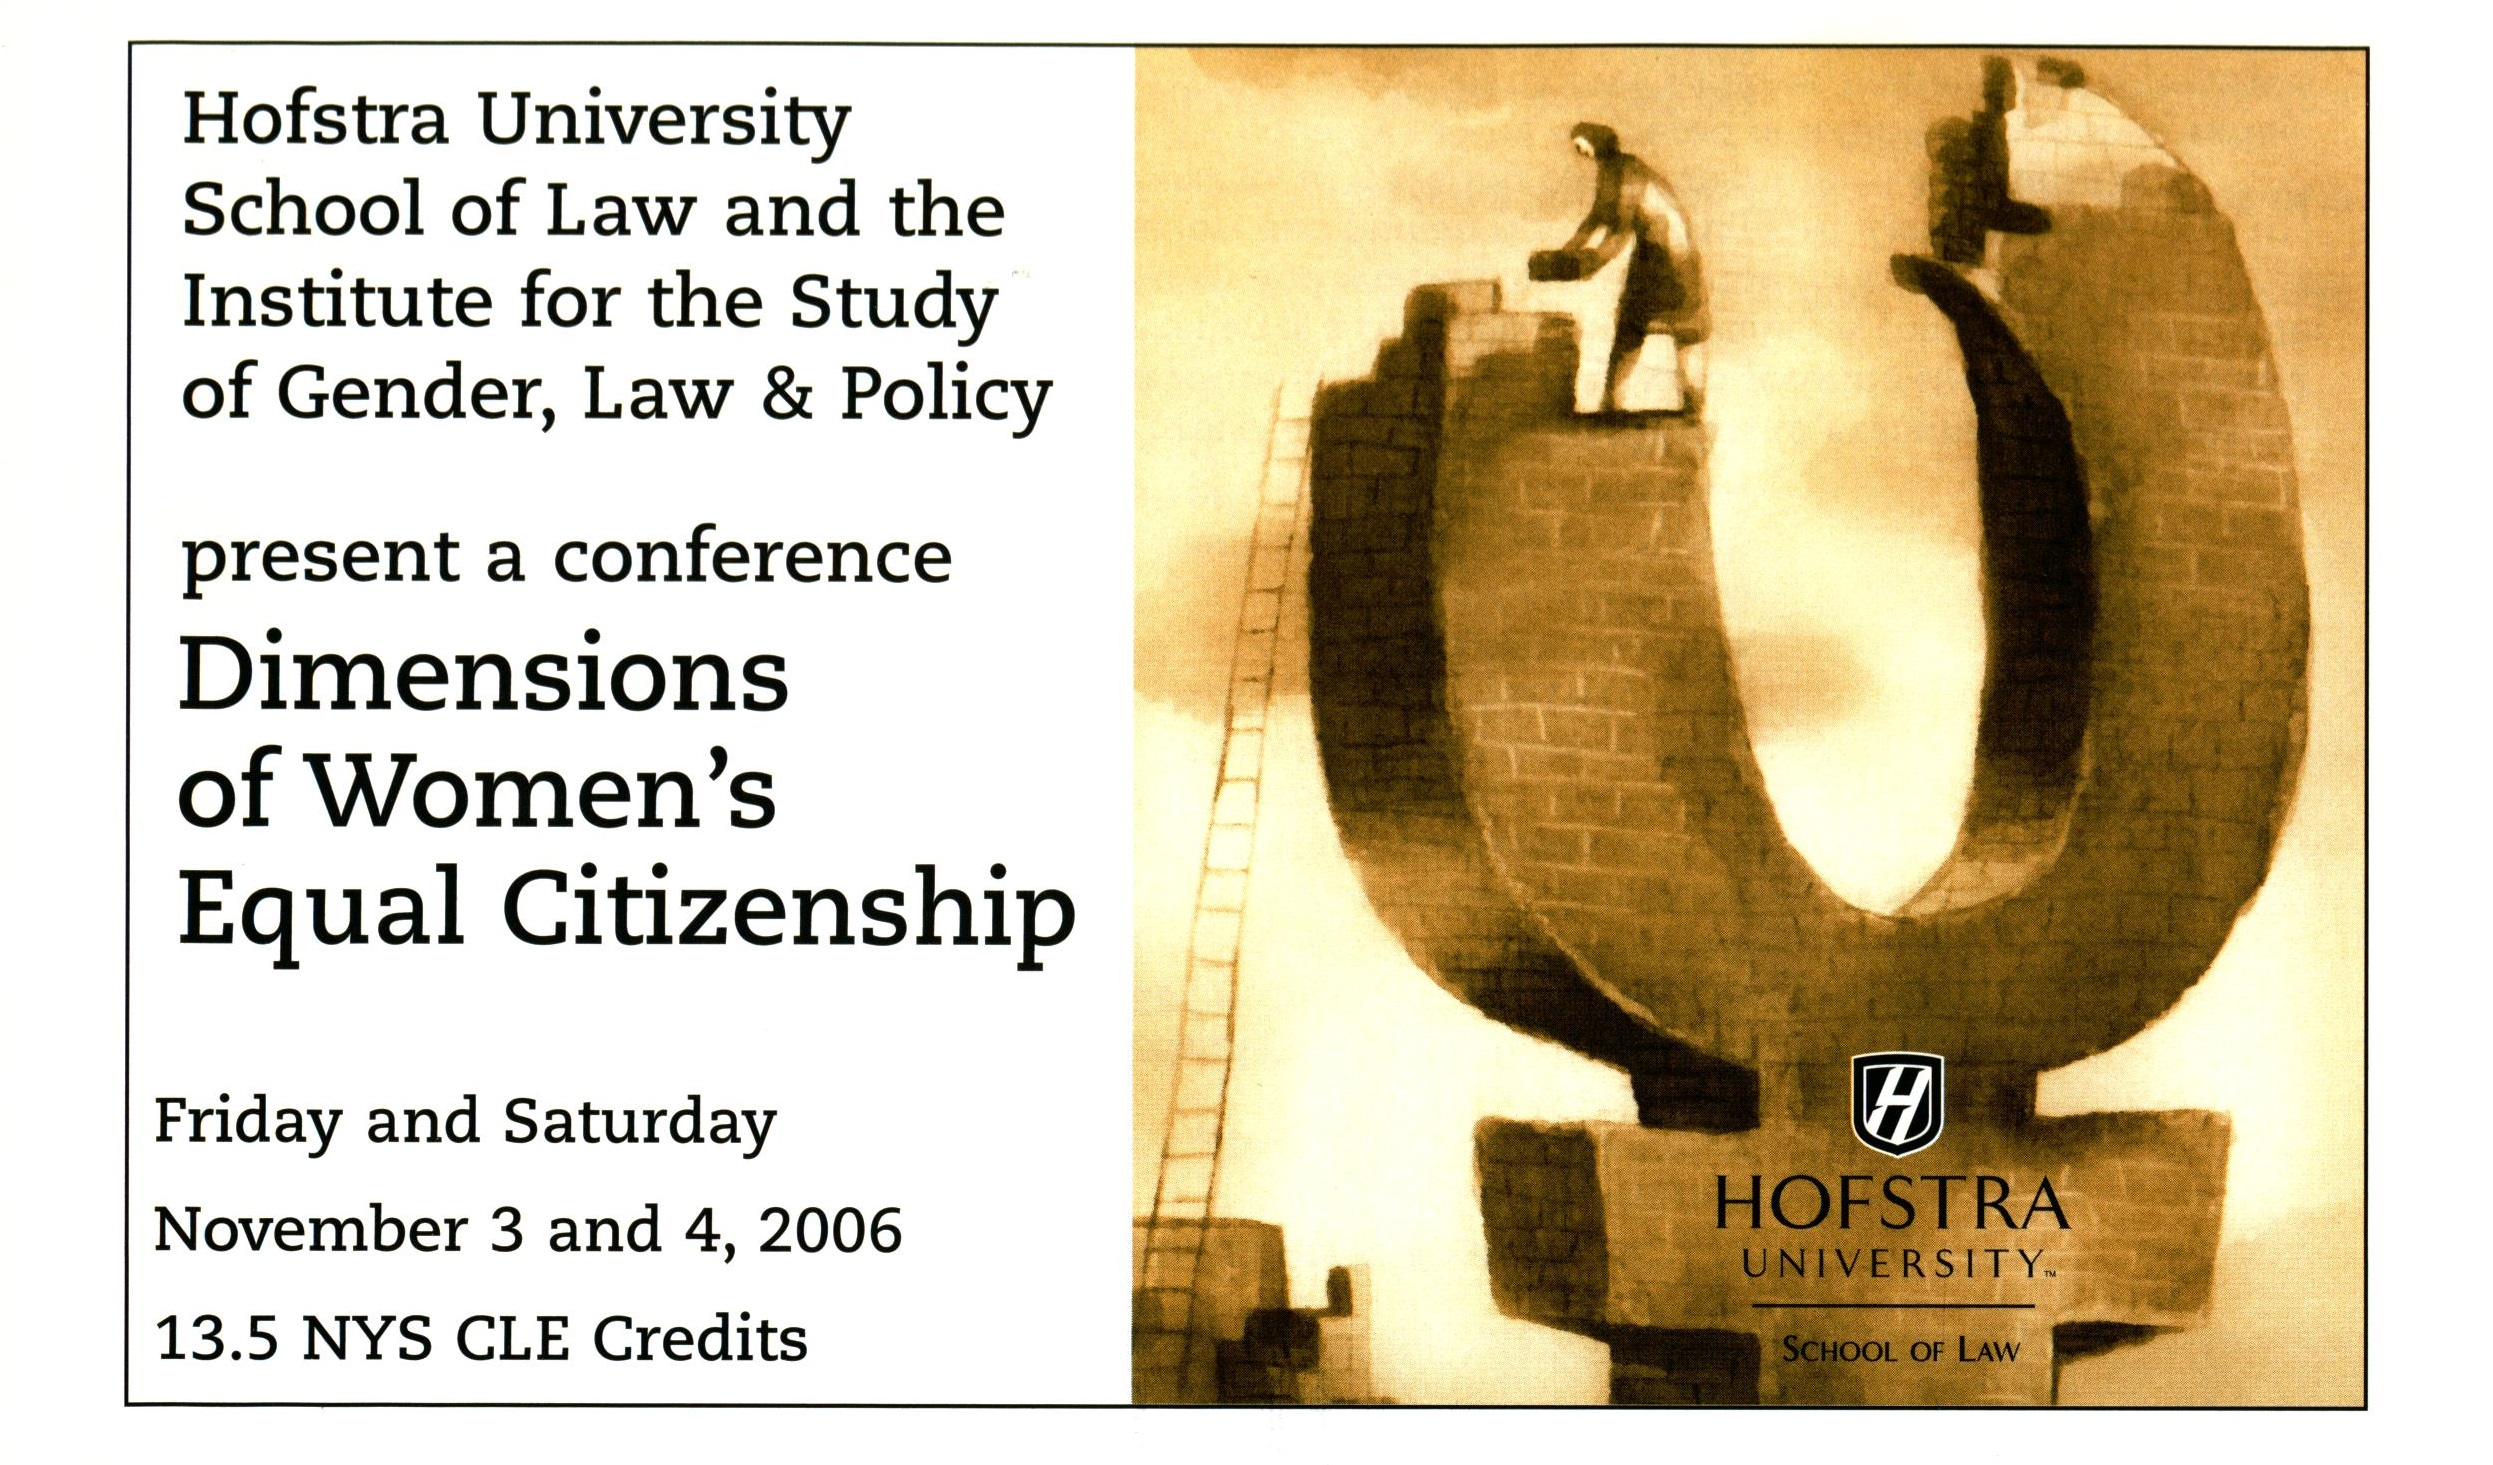 Dimensions of Women's Equal Citizenship (2006)